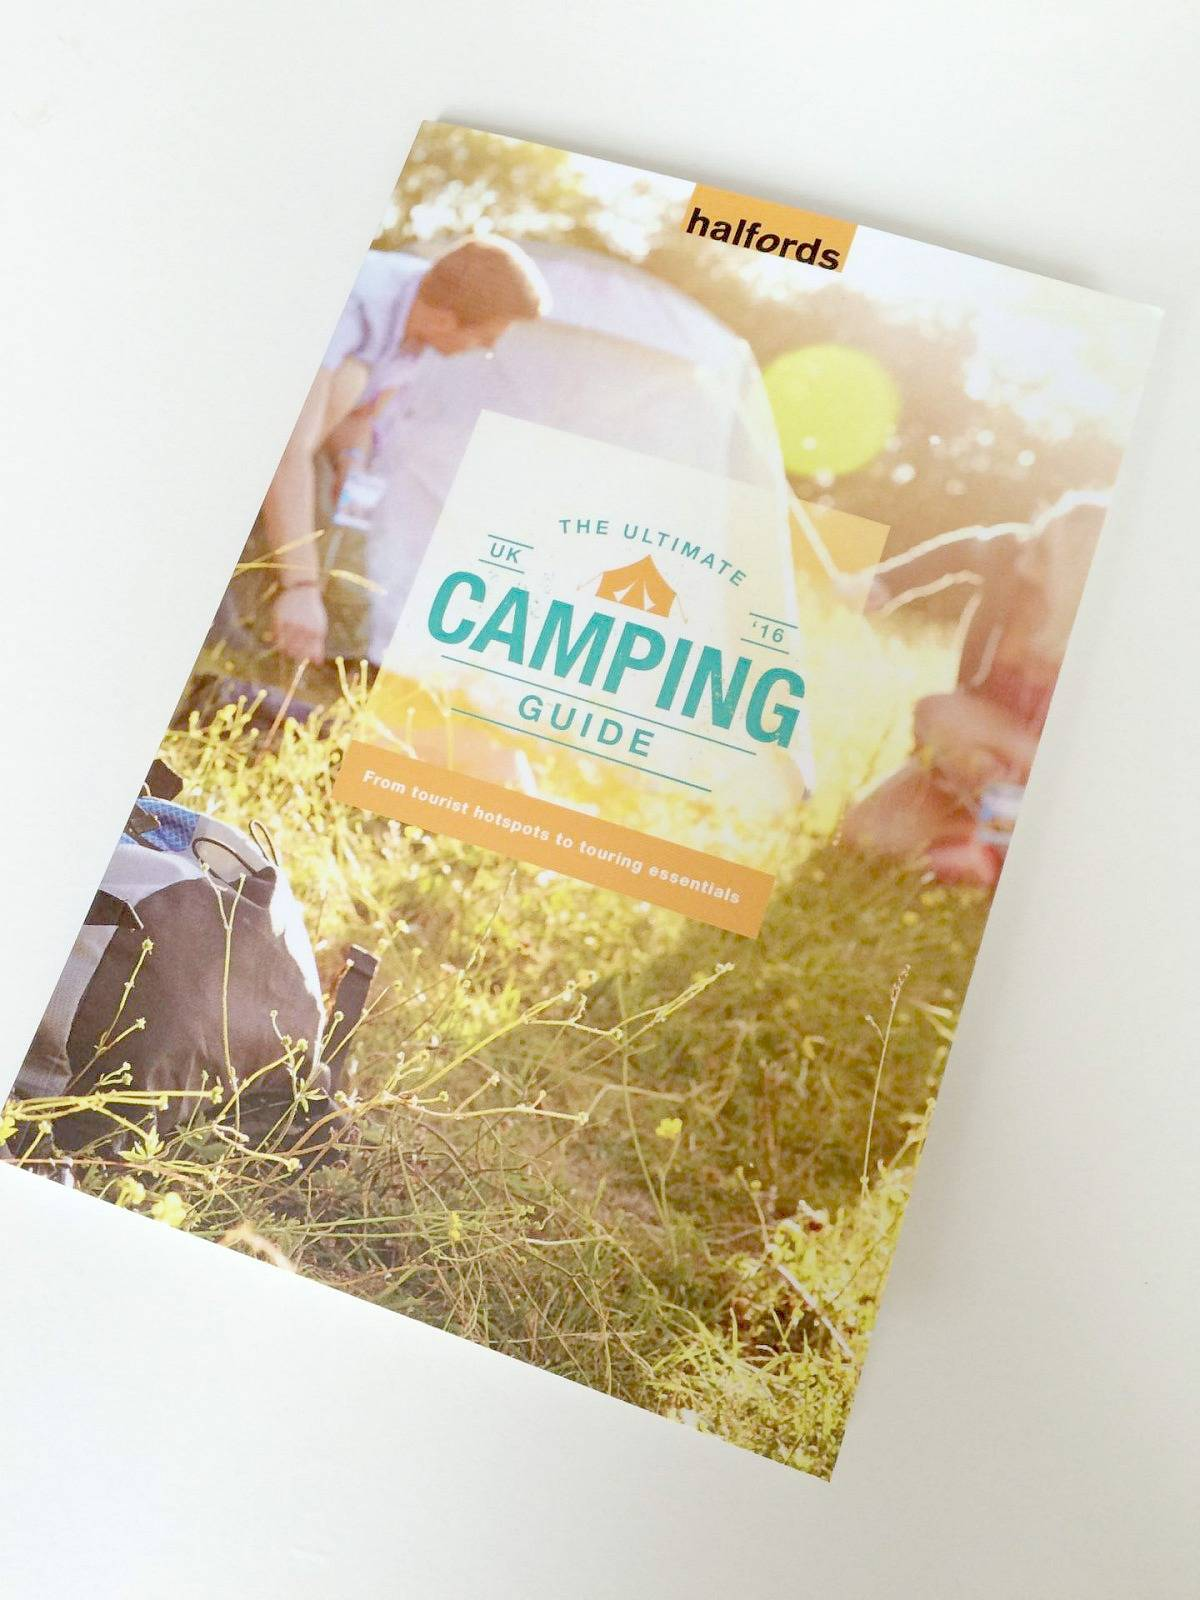 The Ultimate Camping Guide 2016 by Halfords